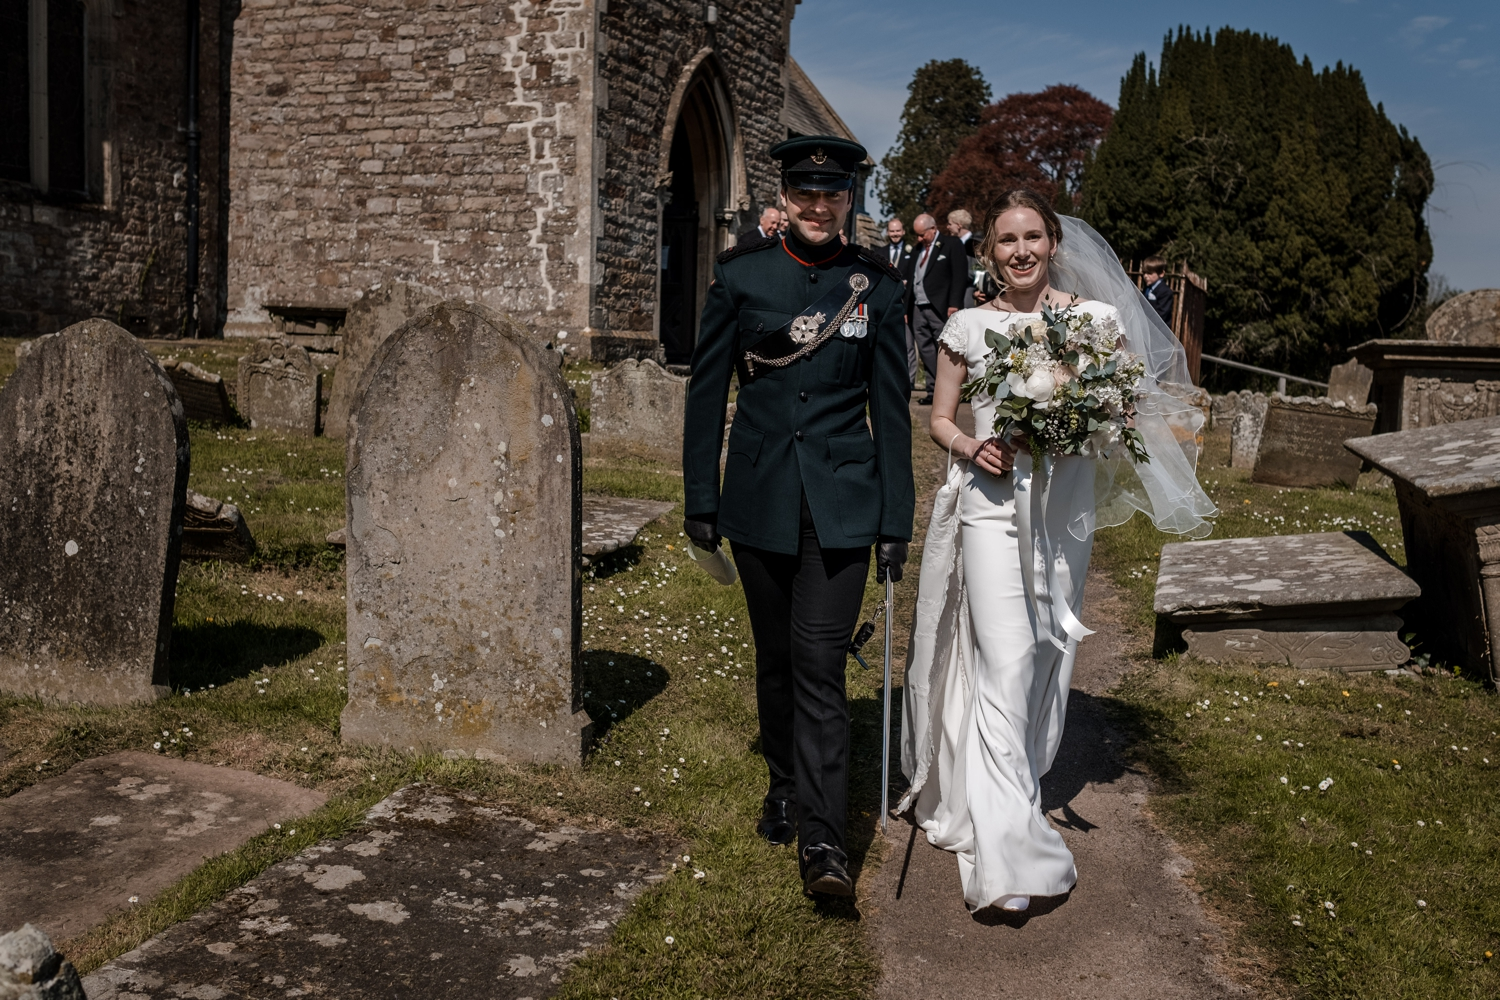 Bride and groom at micro wedding due to covid restrcitions